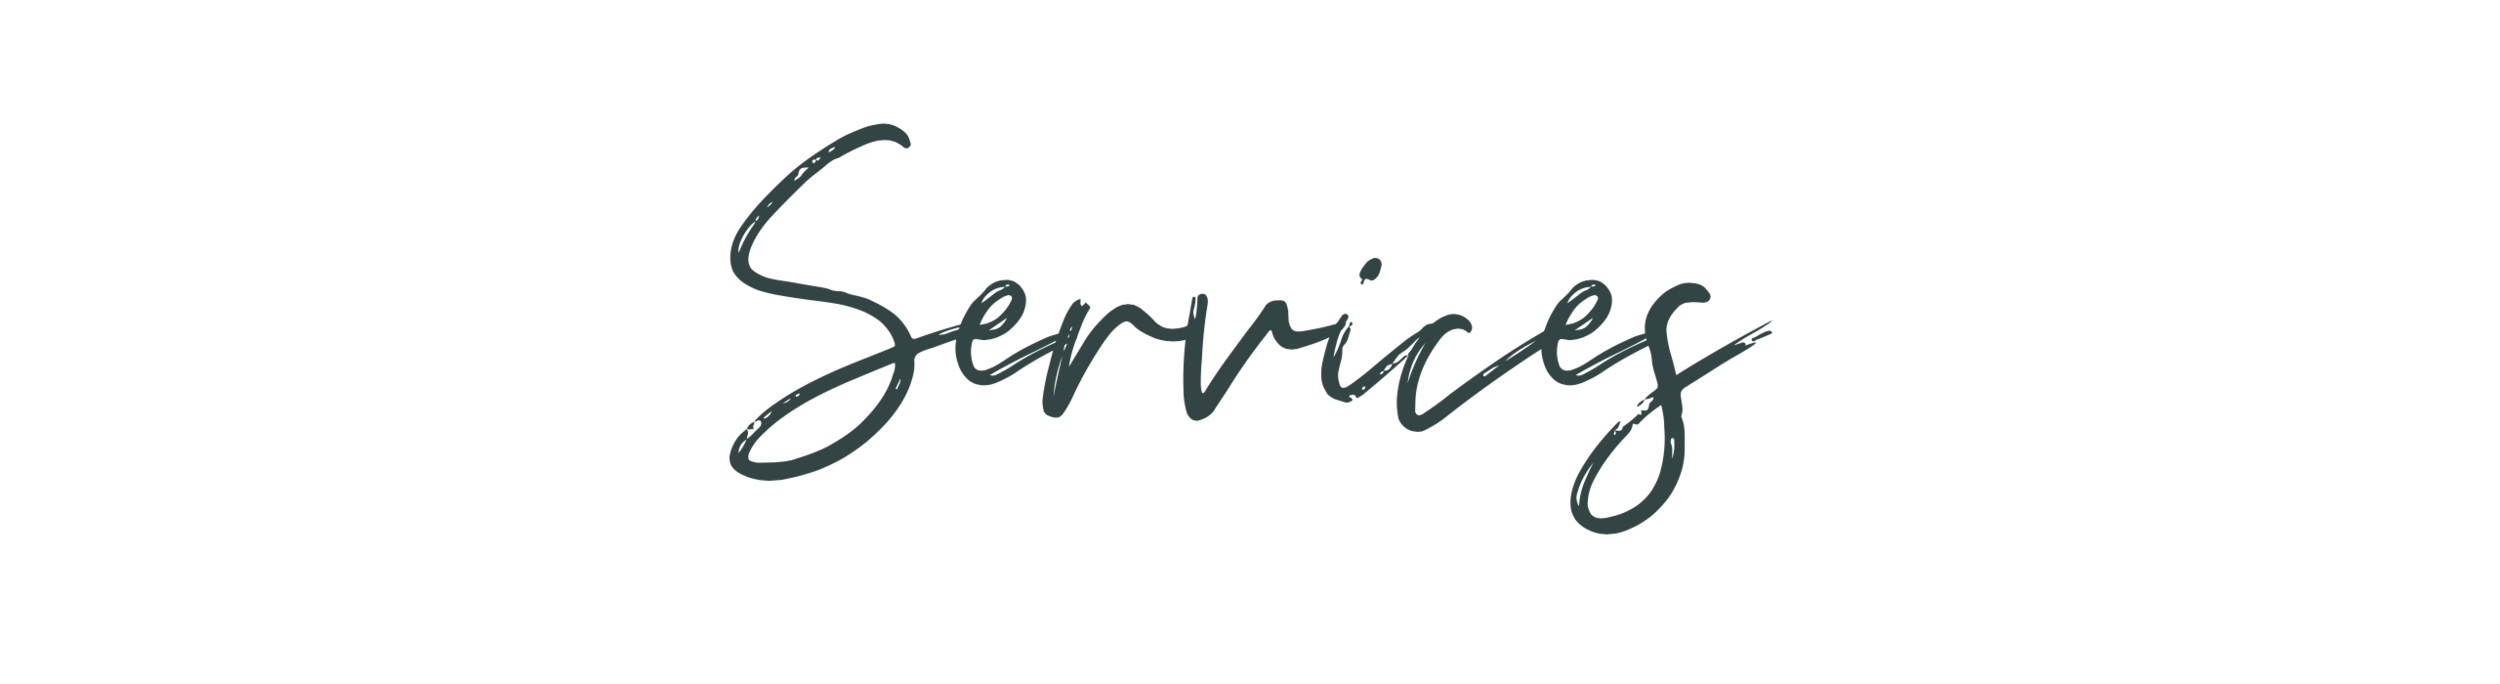 Marketing Services for Conquer and Flourish